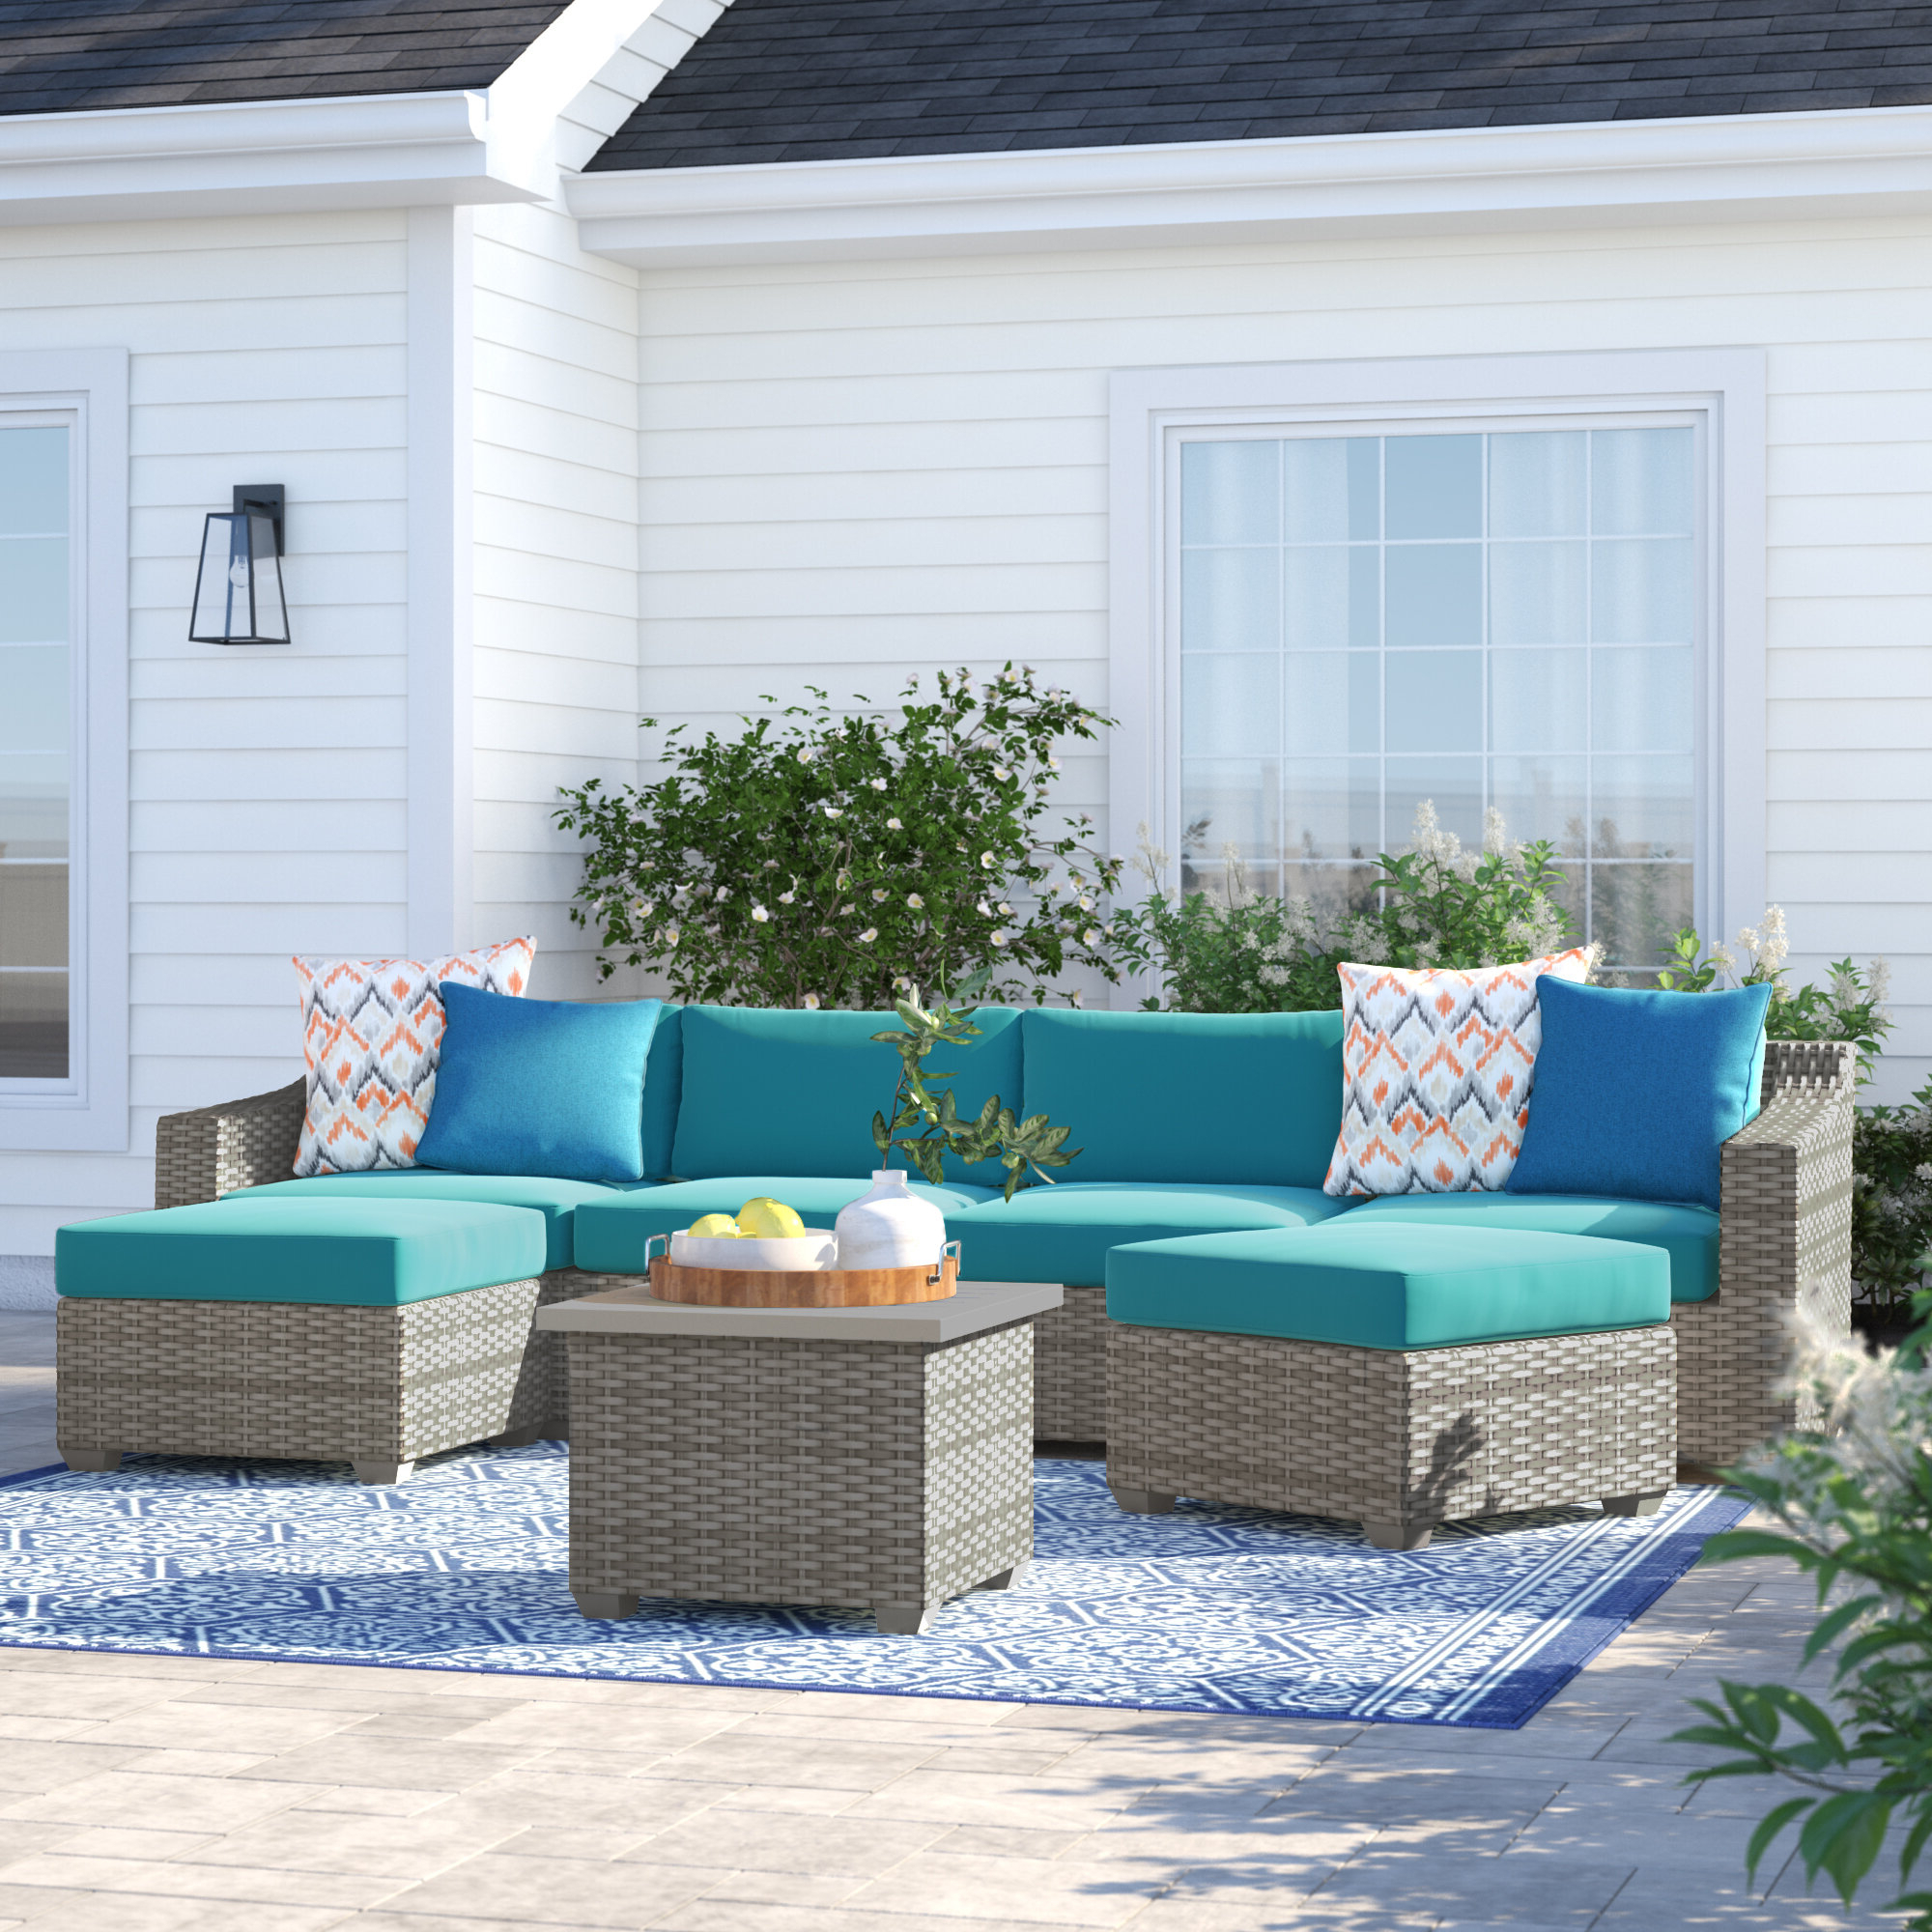 Kunz Loveseats With Cushions For Well Liked Falmouth 7 Piece Sectional Seating Group With Cushions (View 12 of 20)